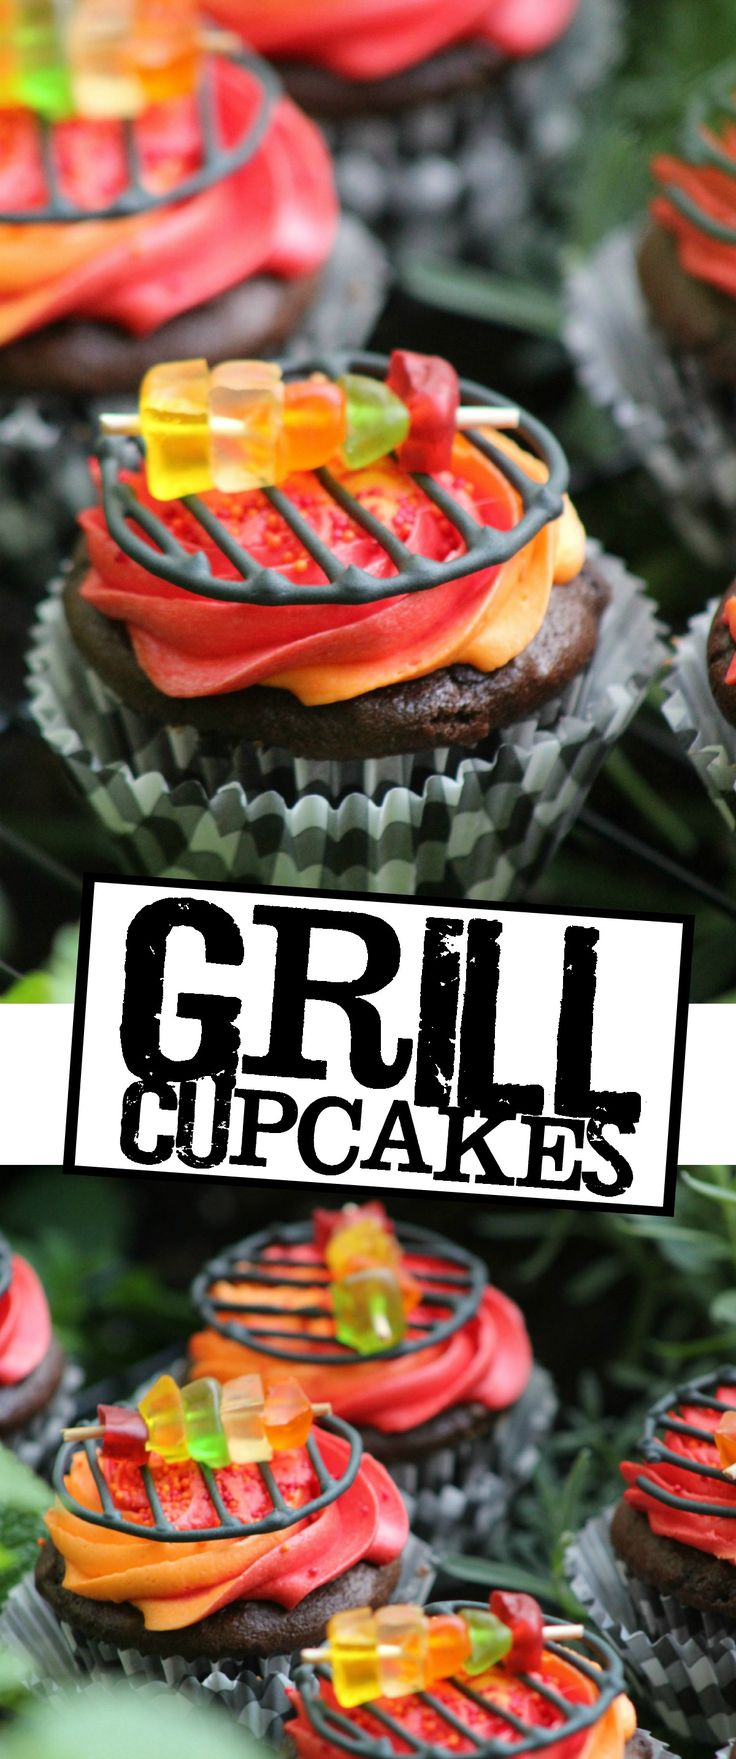 BBQ Grill Cupcakes -  These Grill Cupcakes are a whimsical dessert to help you celebrate a summer barbecue party!